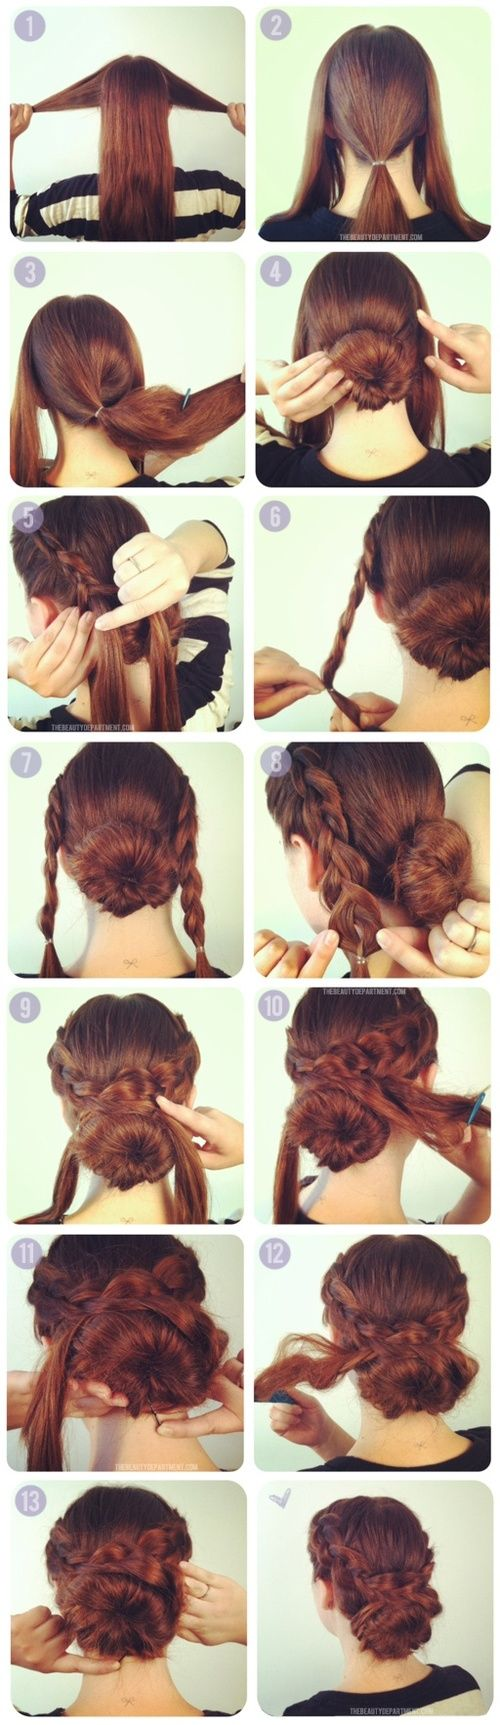 Hairstyles of the Regency to Victorian / braided cross bun updo